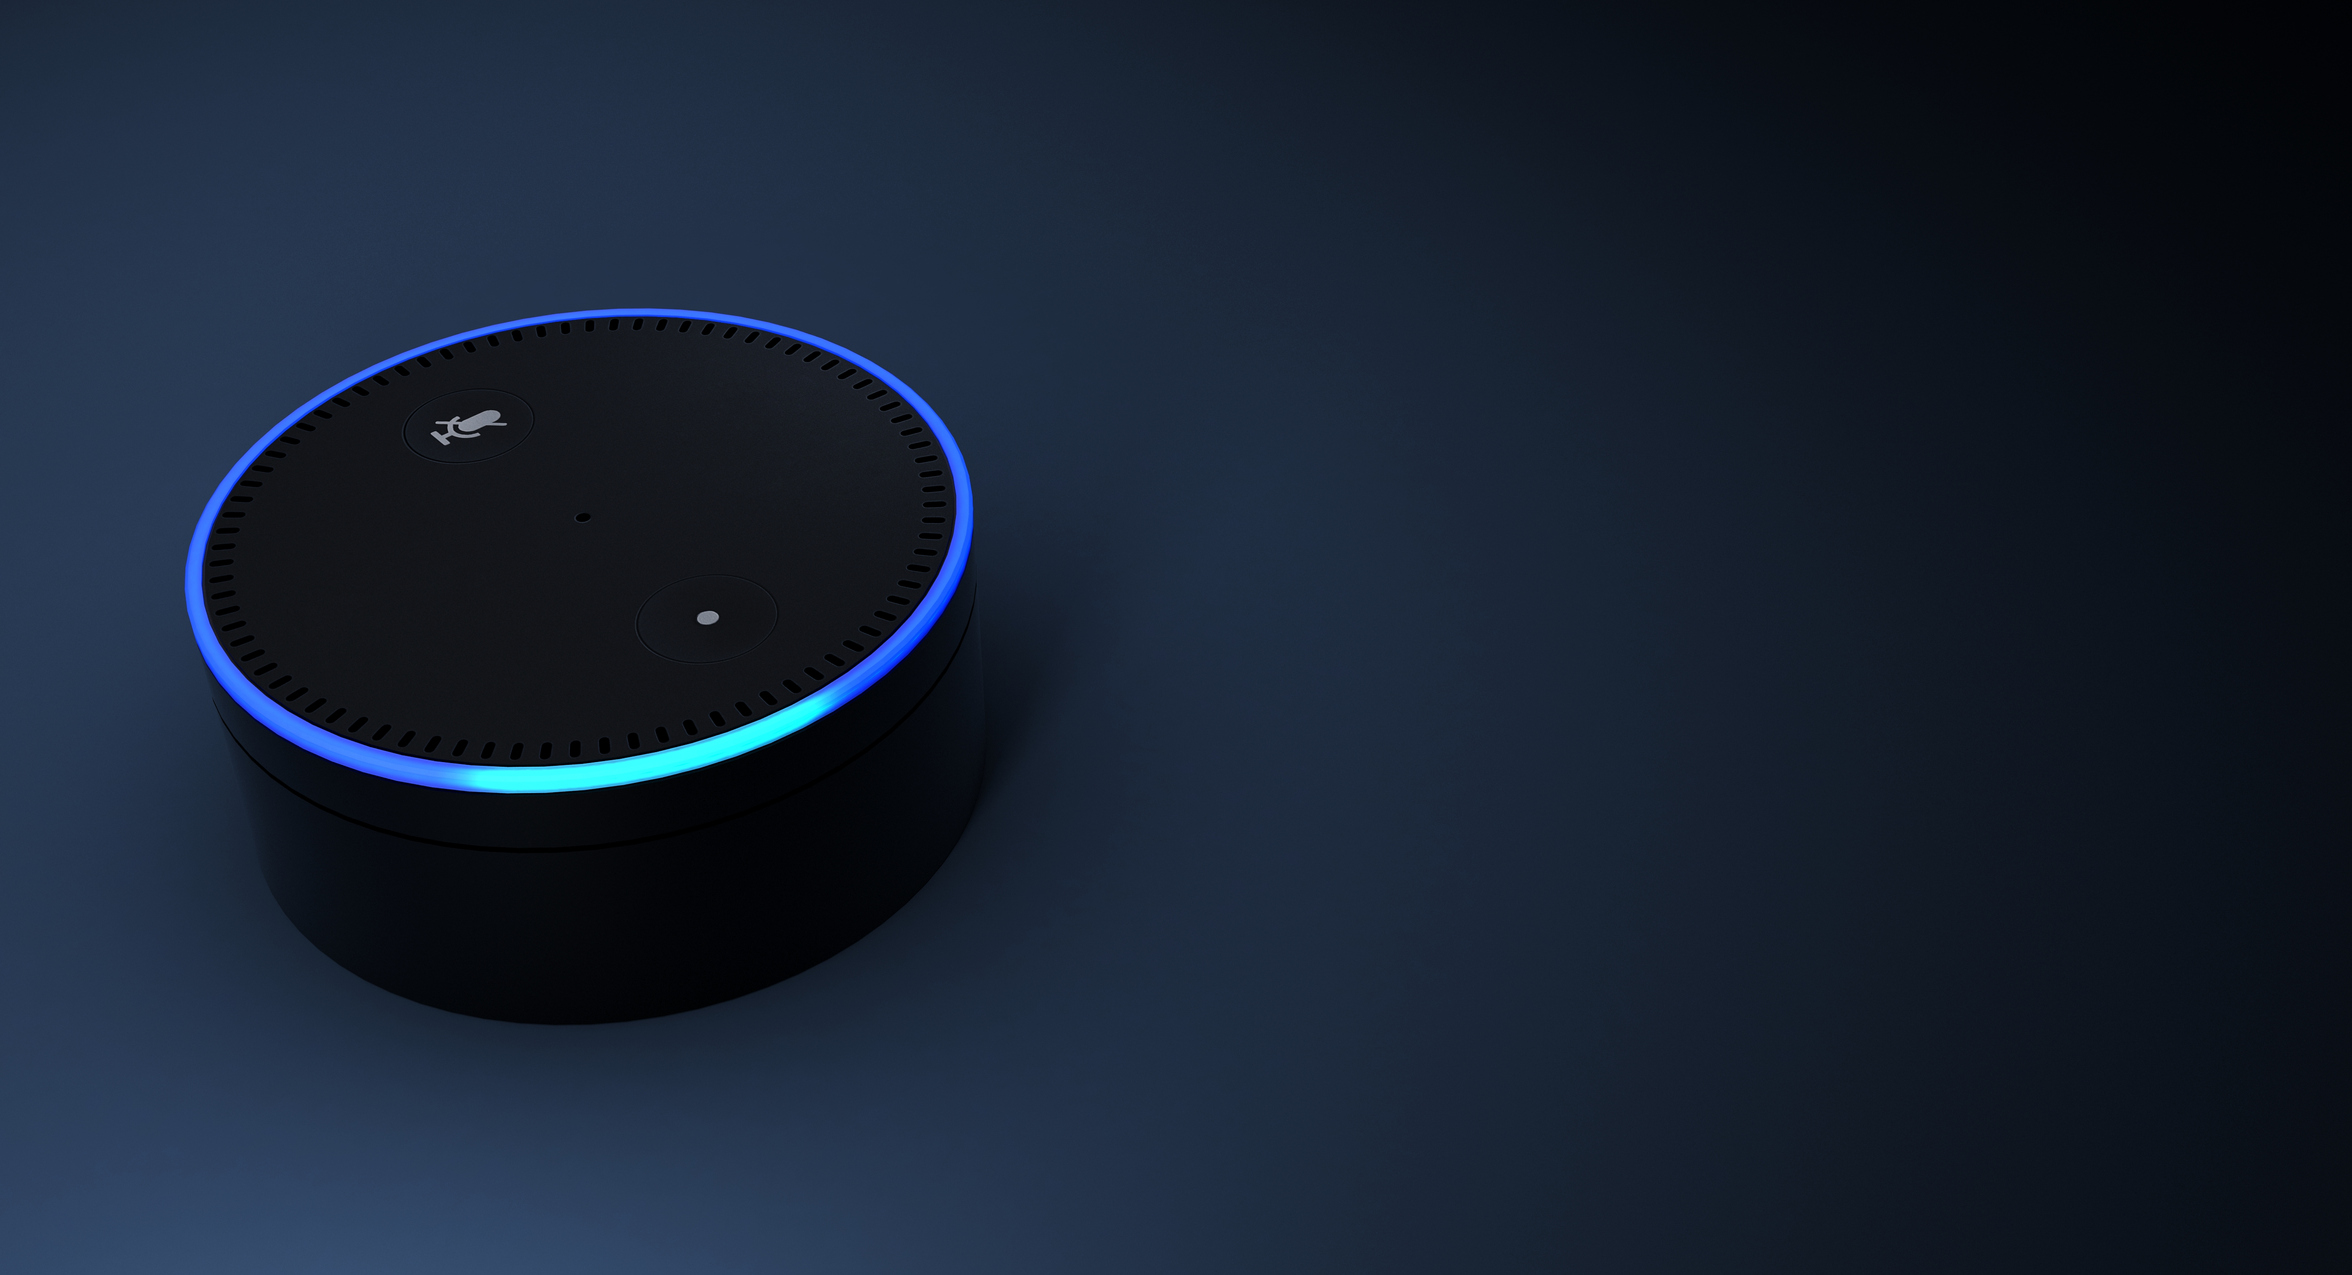 Order an Amazon Echo Device - Click here to be redirected to the Amazon Store